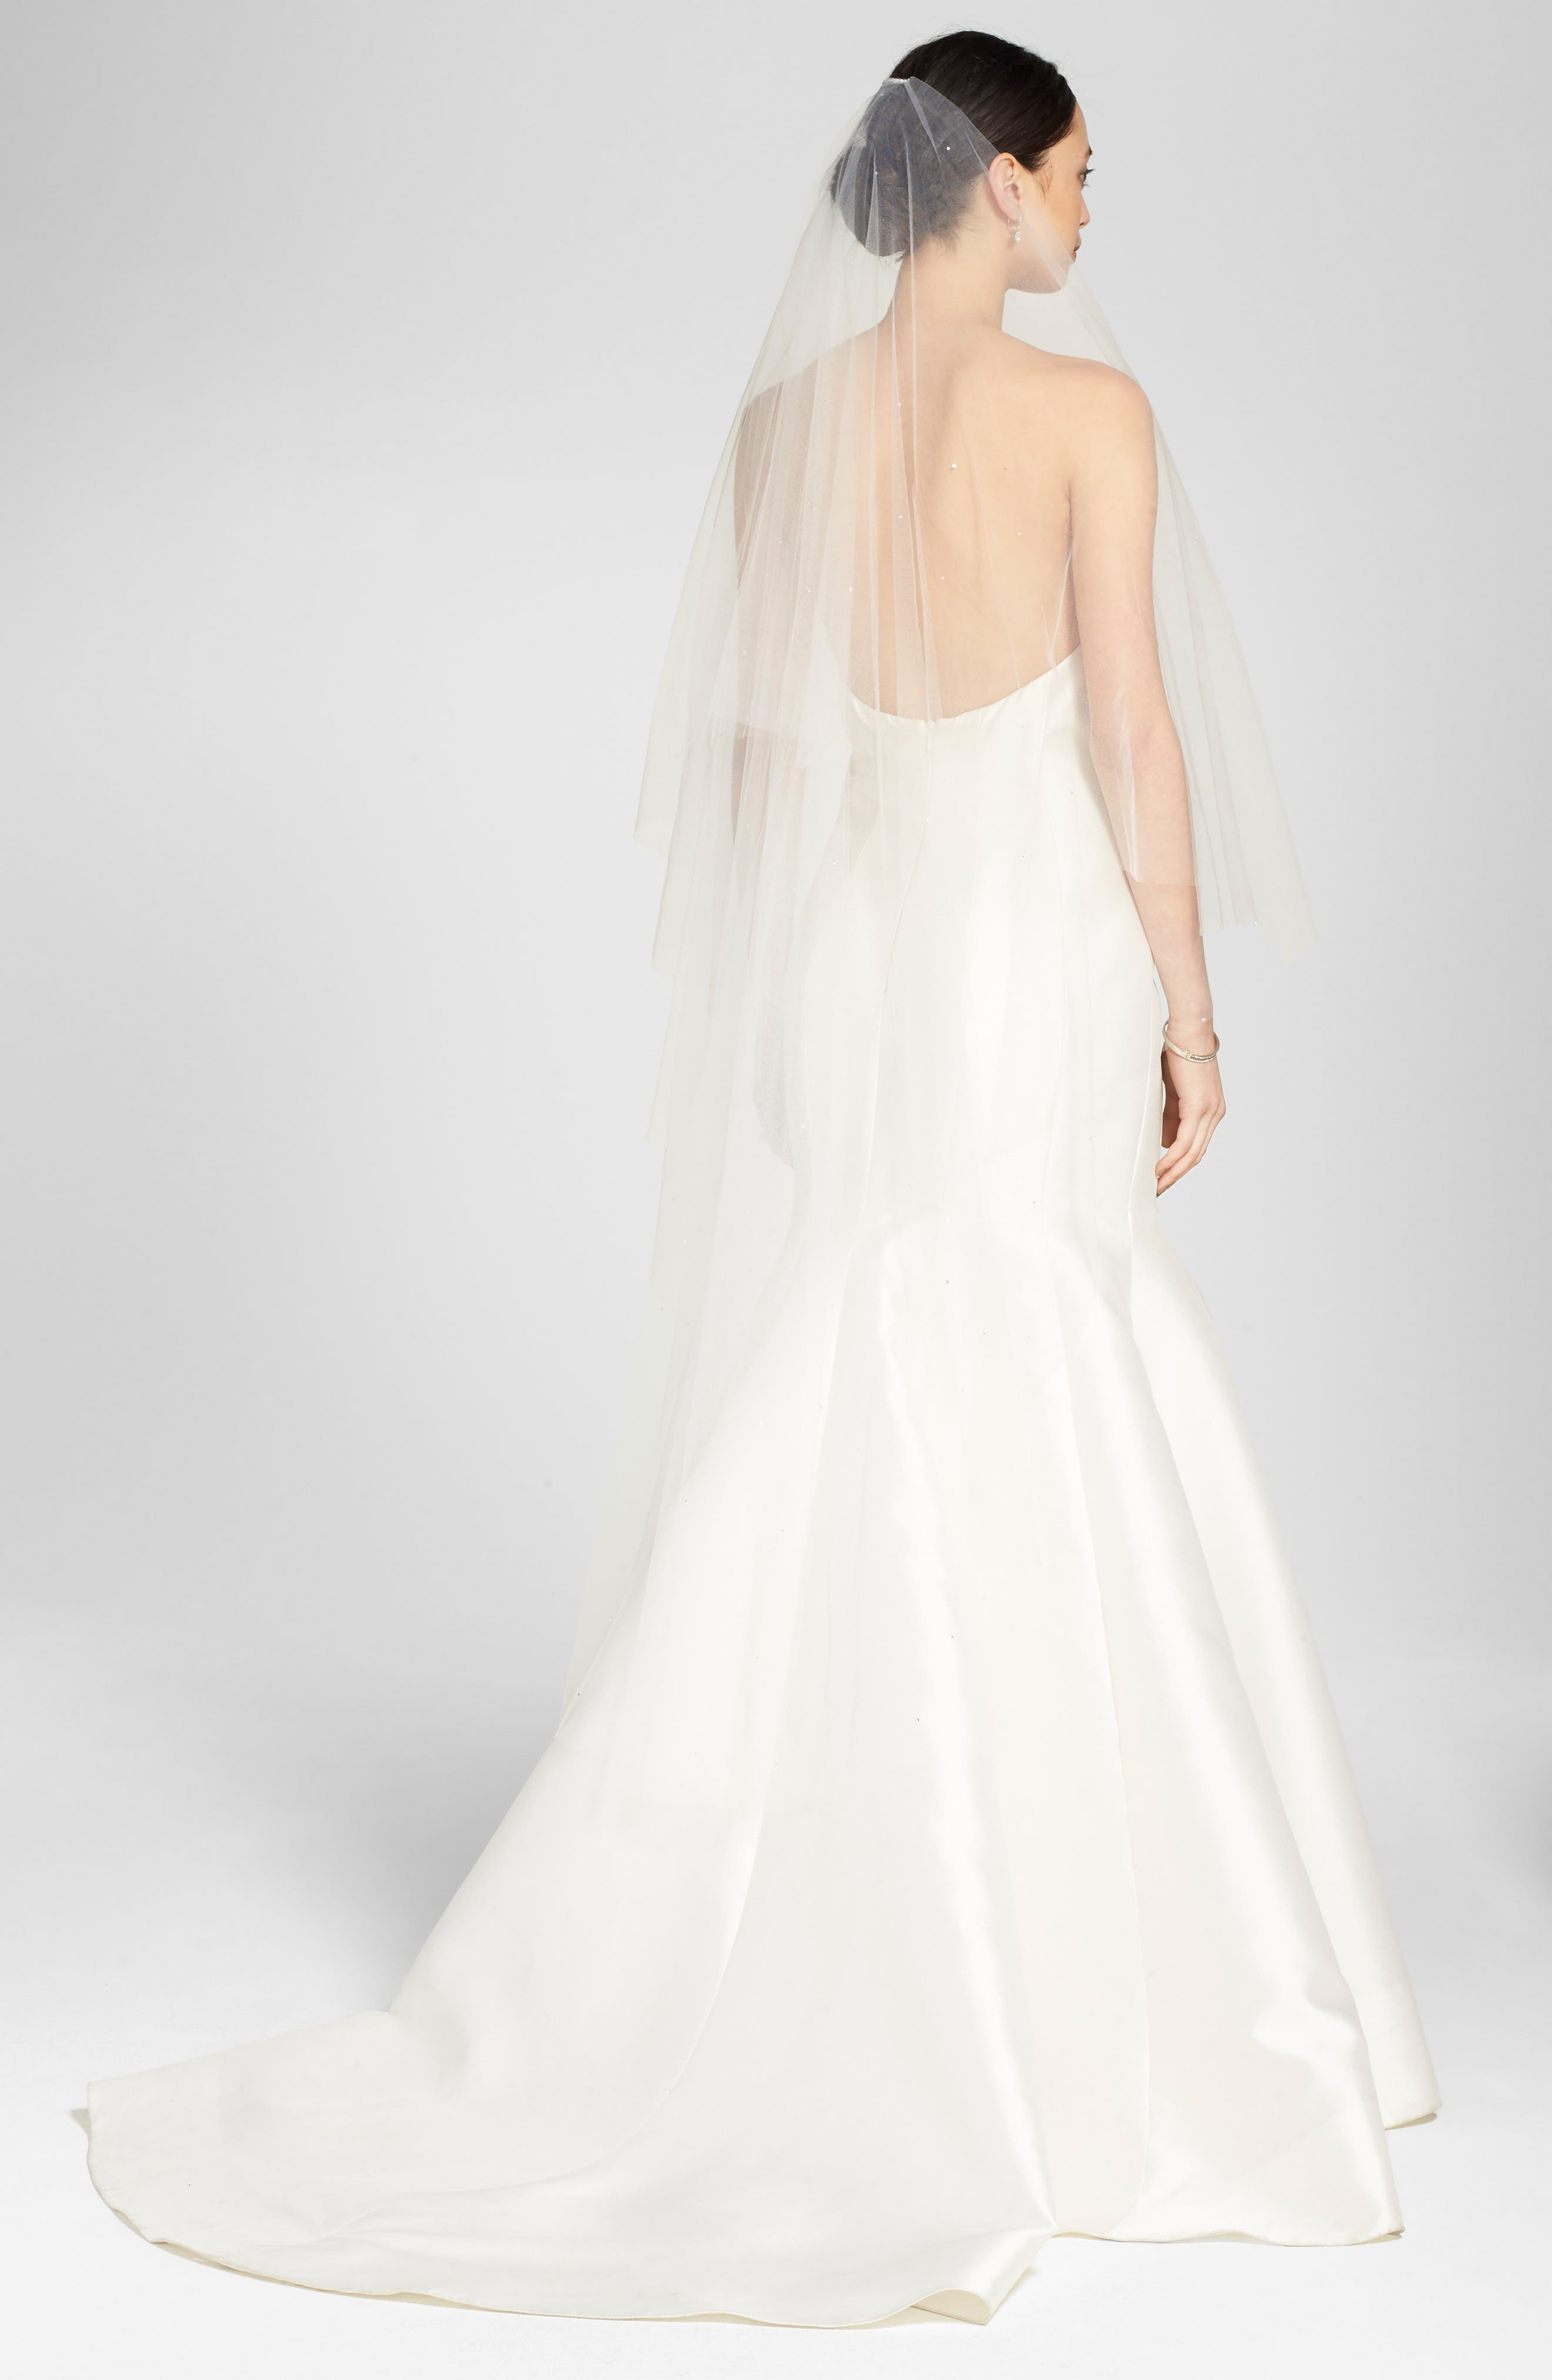 'Chakra' Circle Cut Waltz Length Veil, Main, color, LIGHT IVORY